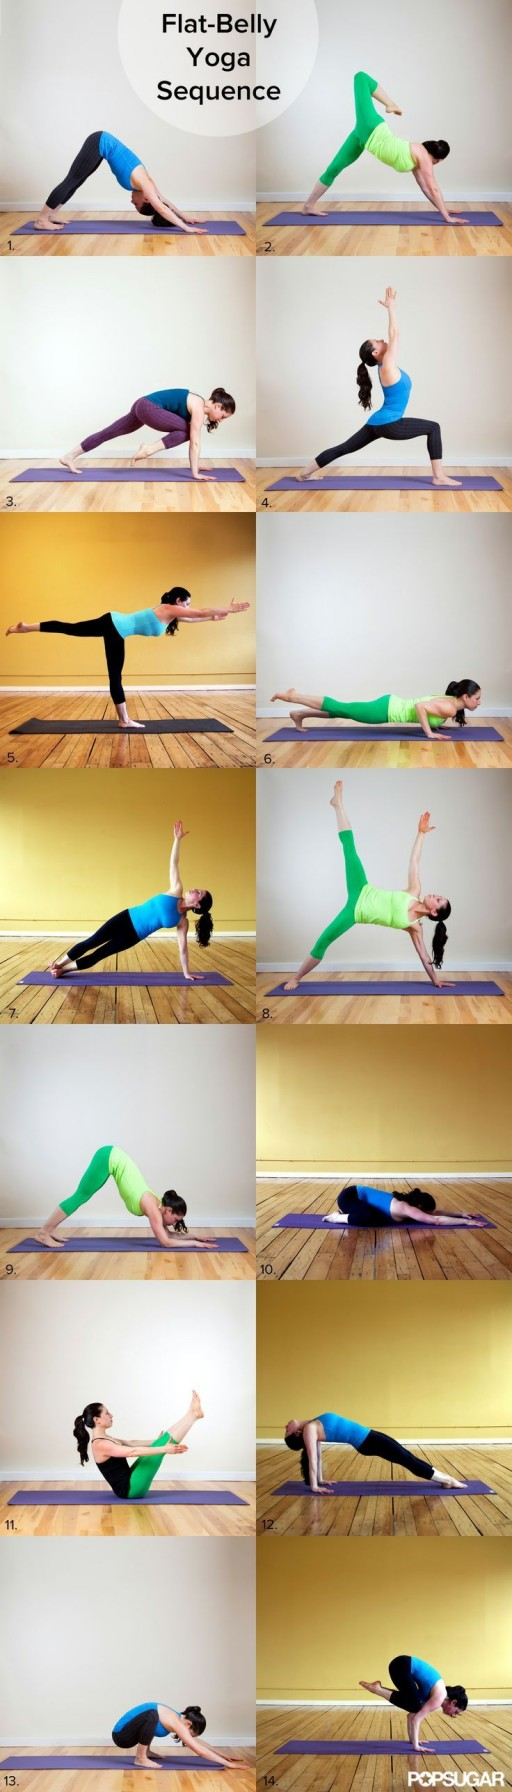 How To Lose Weight And Get Flat Belly Through Yoga Exercises 1